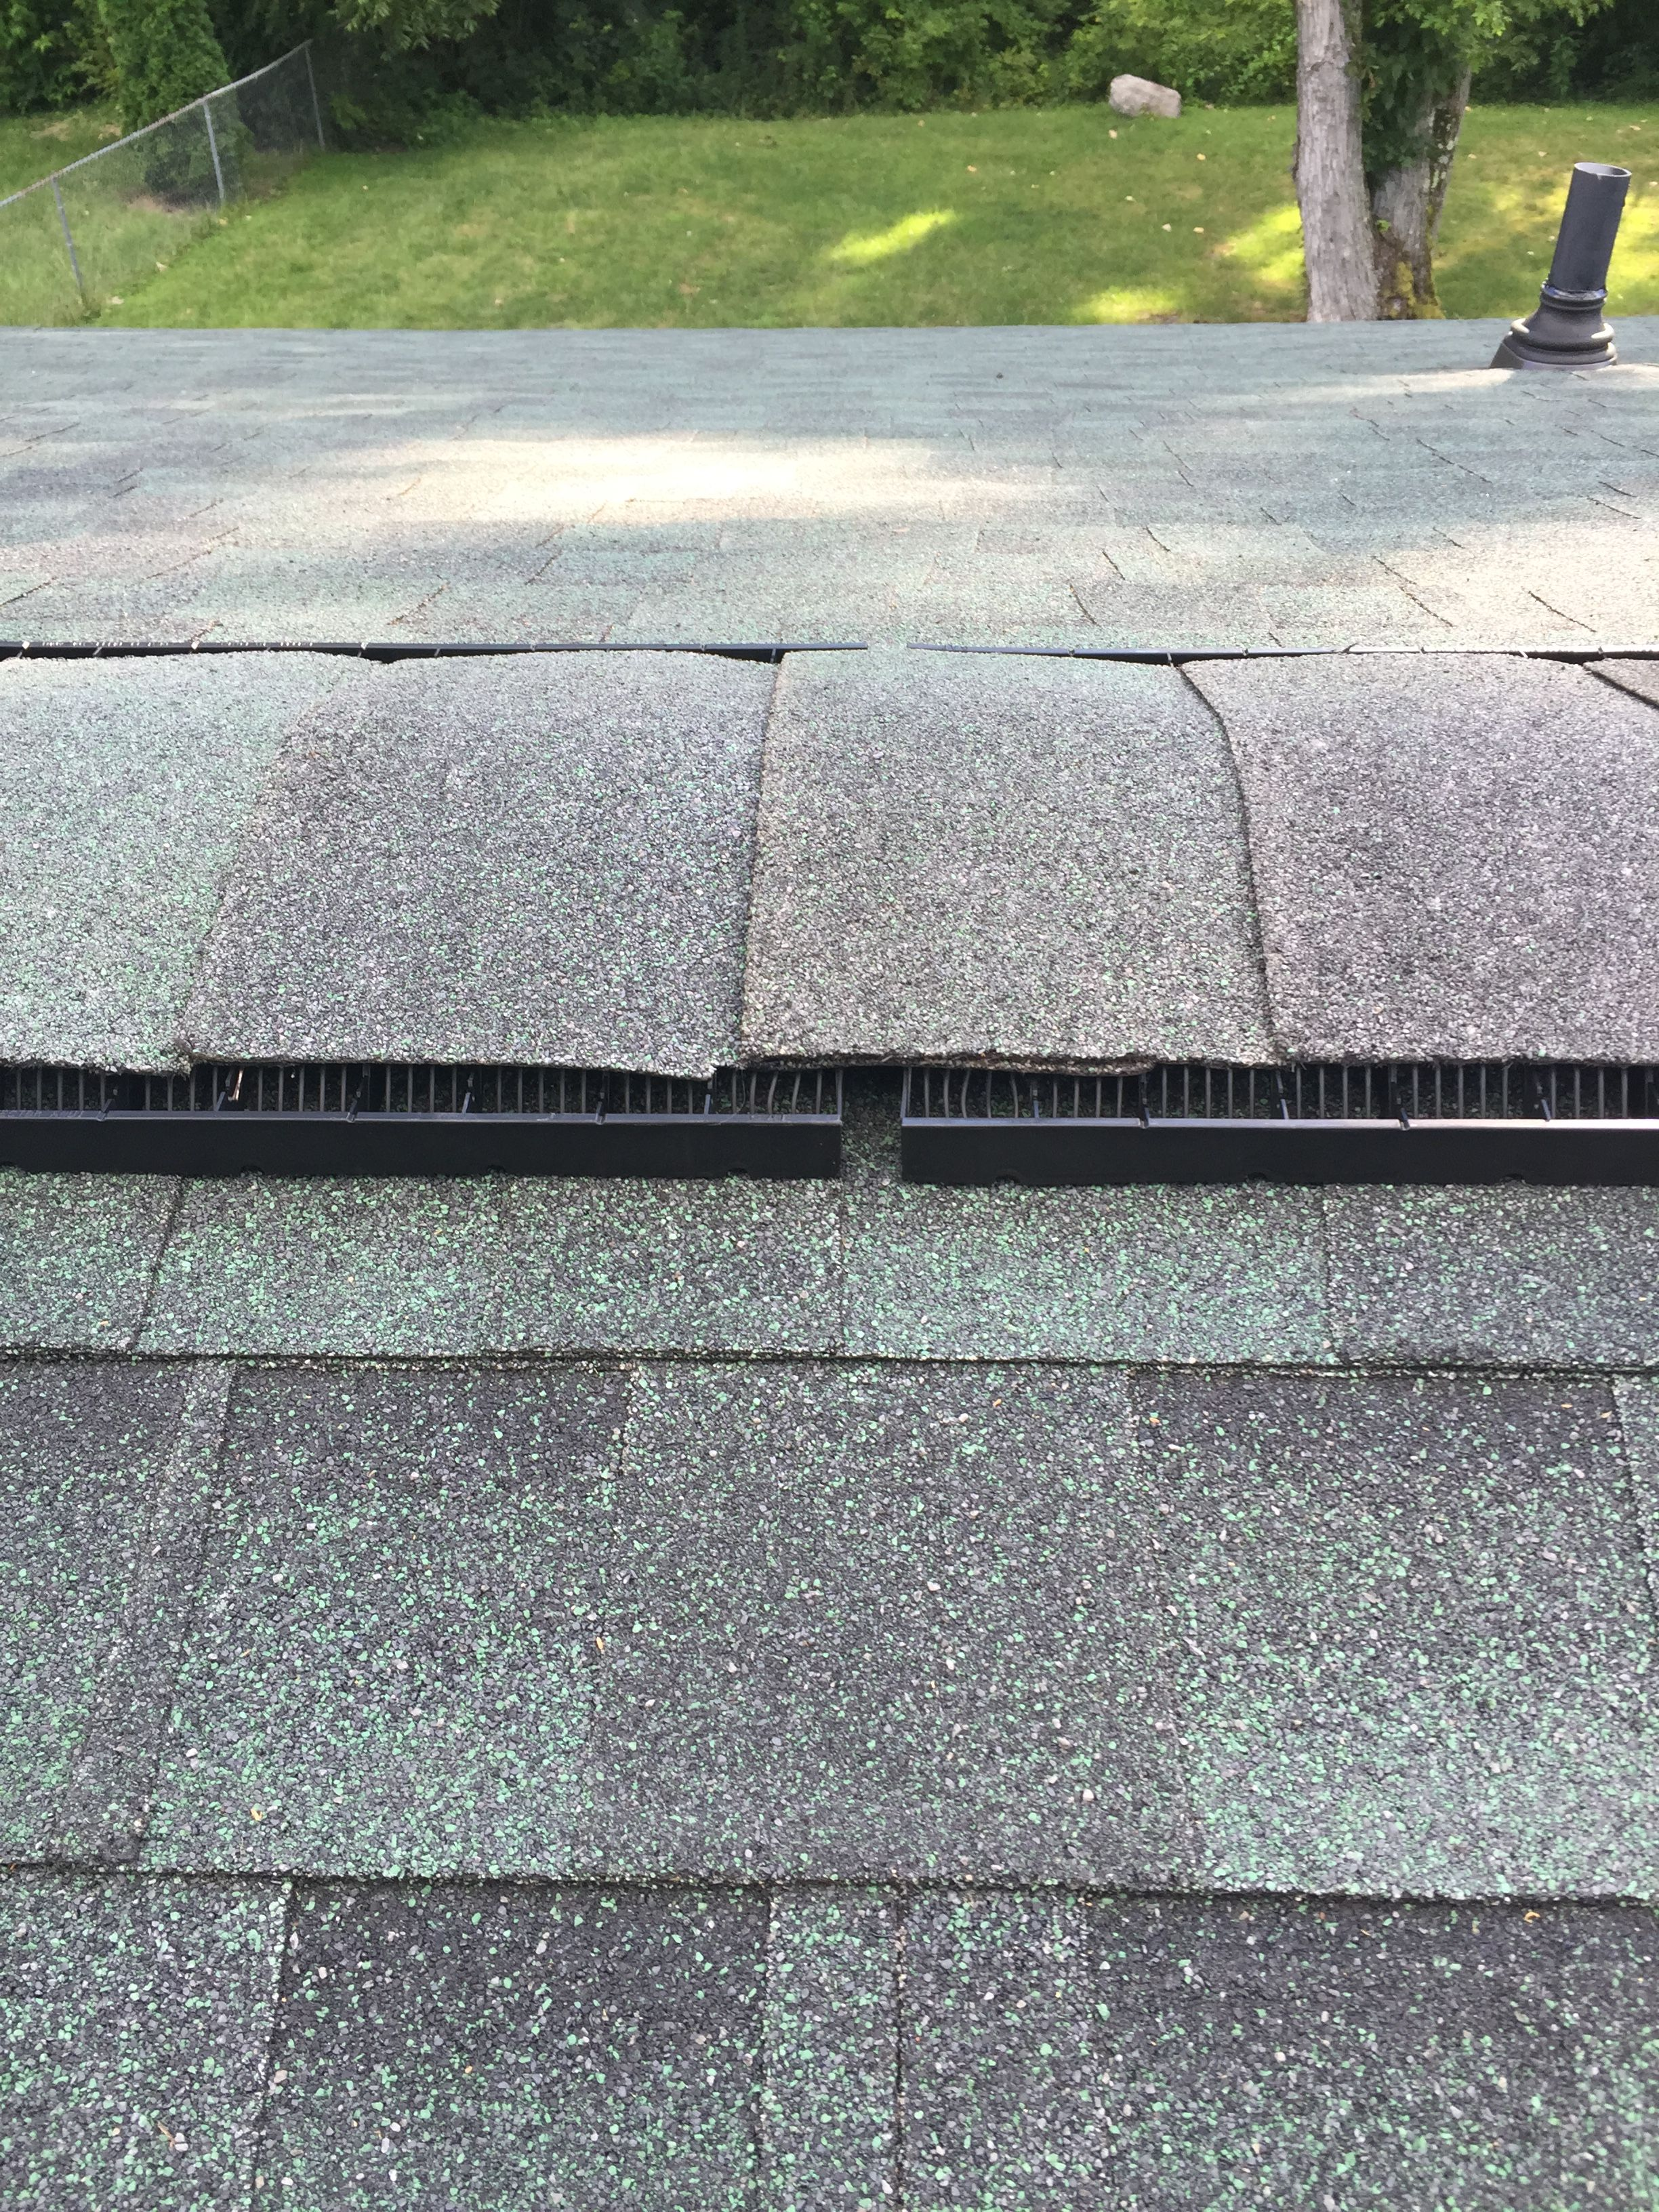 How To Shingle A Roof Ridge Cap Shingles Top Row Layout Details Preventing Moss And Fungus On Roof Shingling Ridge Cap Roof Cap